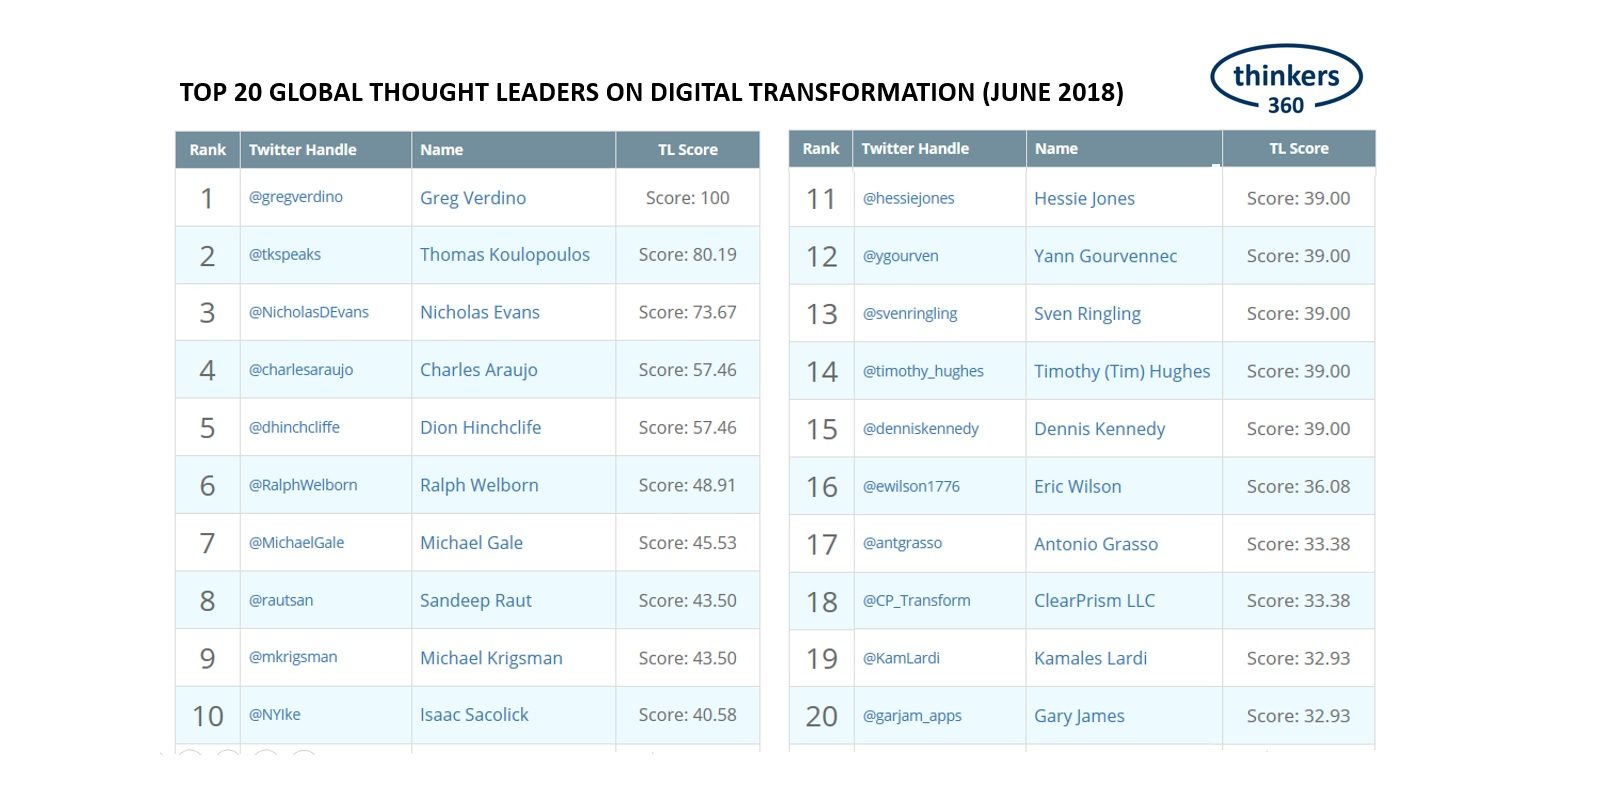 Top 20 Global Thought Leaders on Digital Transformation | Thinkers360